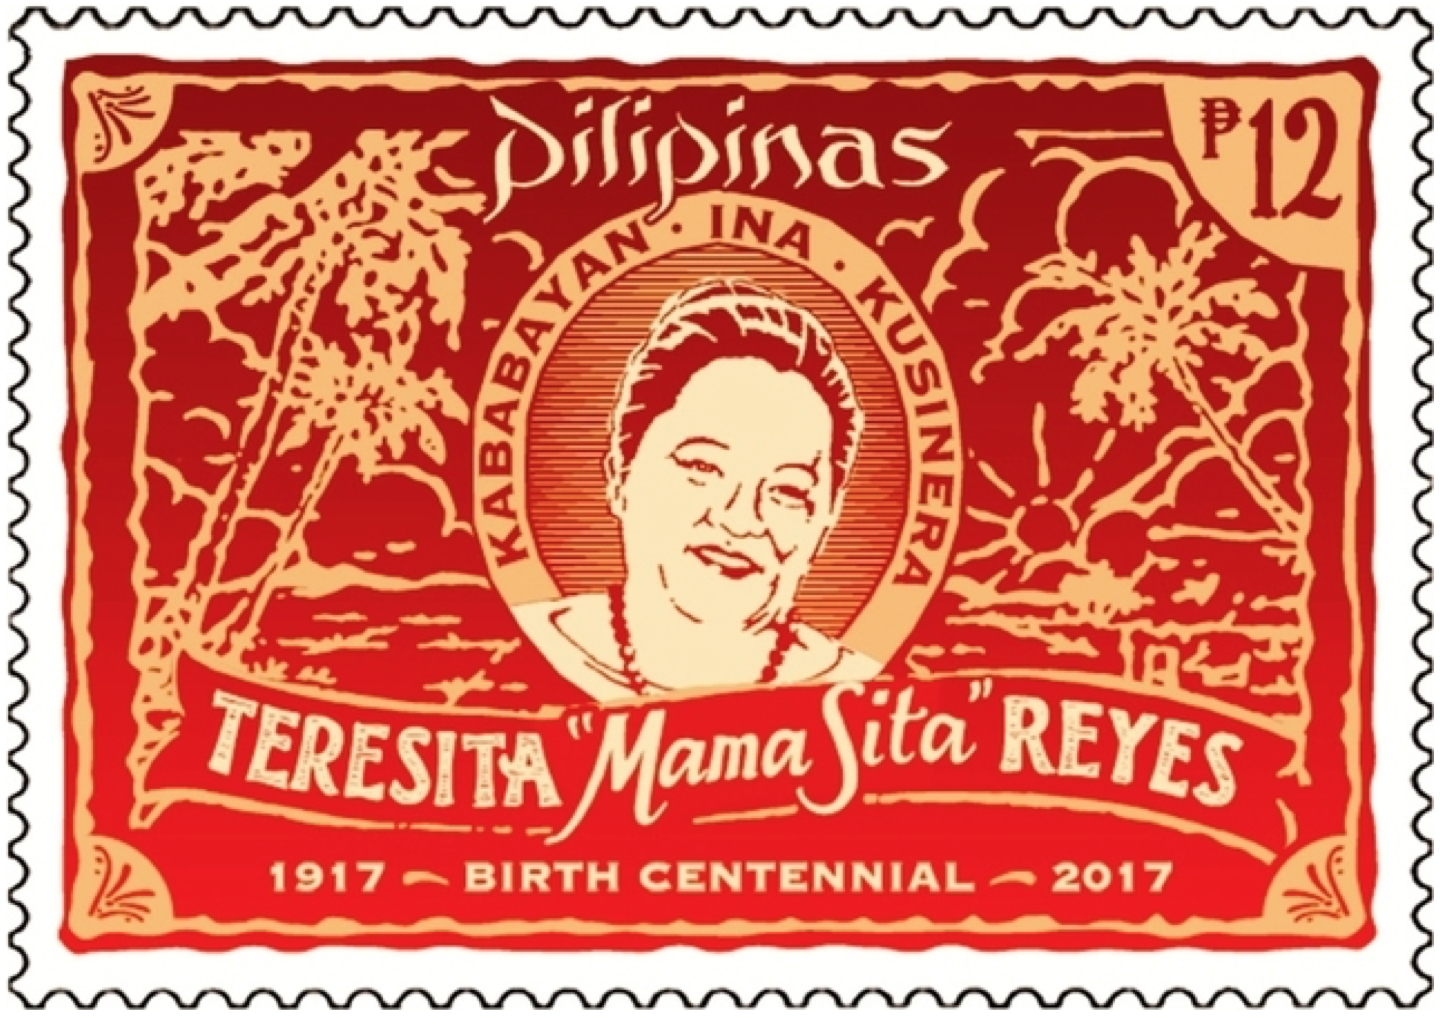 MAMA SITA. The Philippine Postal Office has released a special stamp in honor of Mama Sita